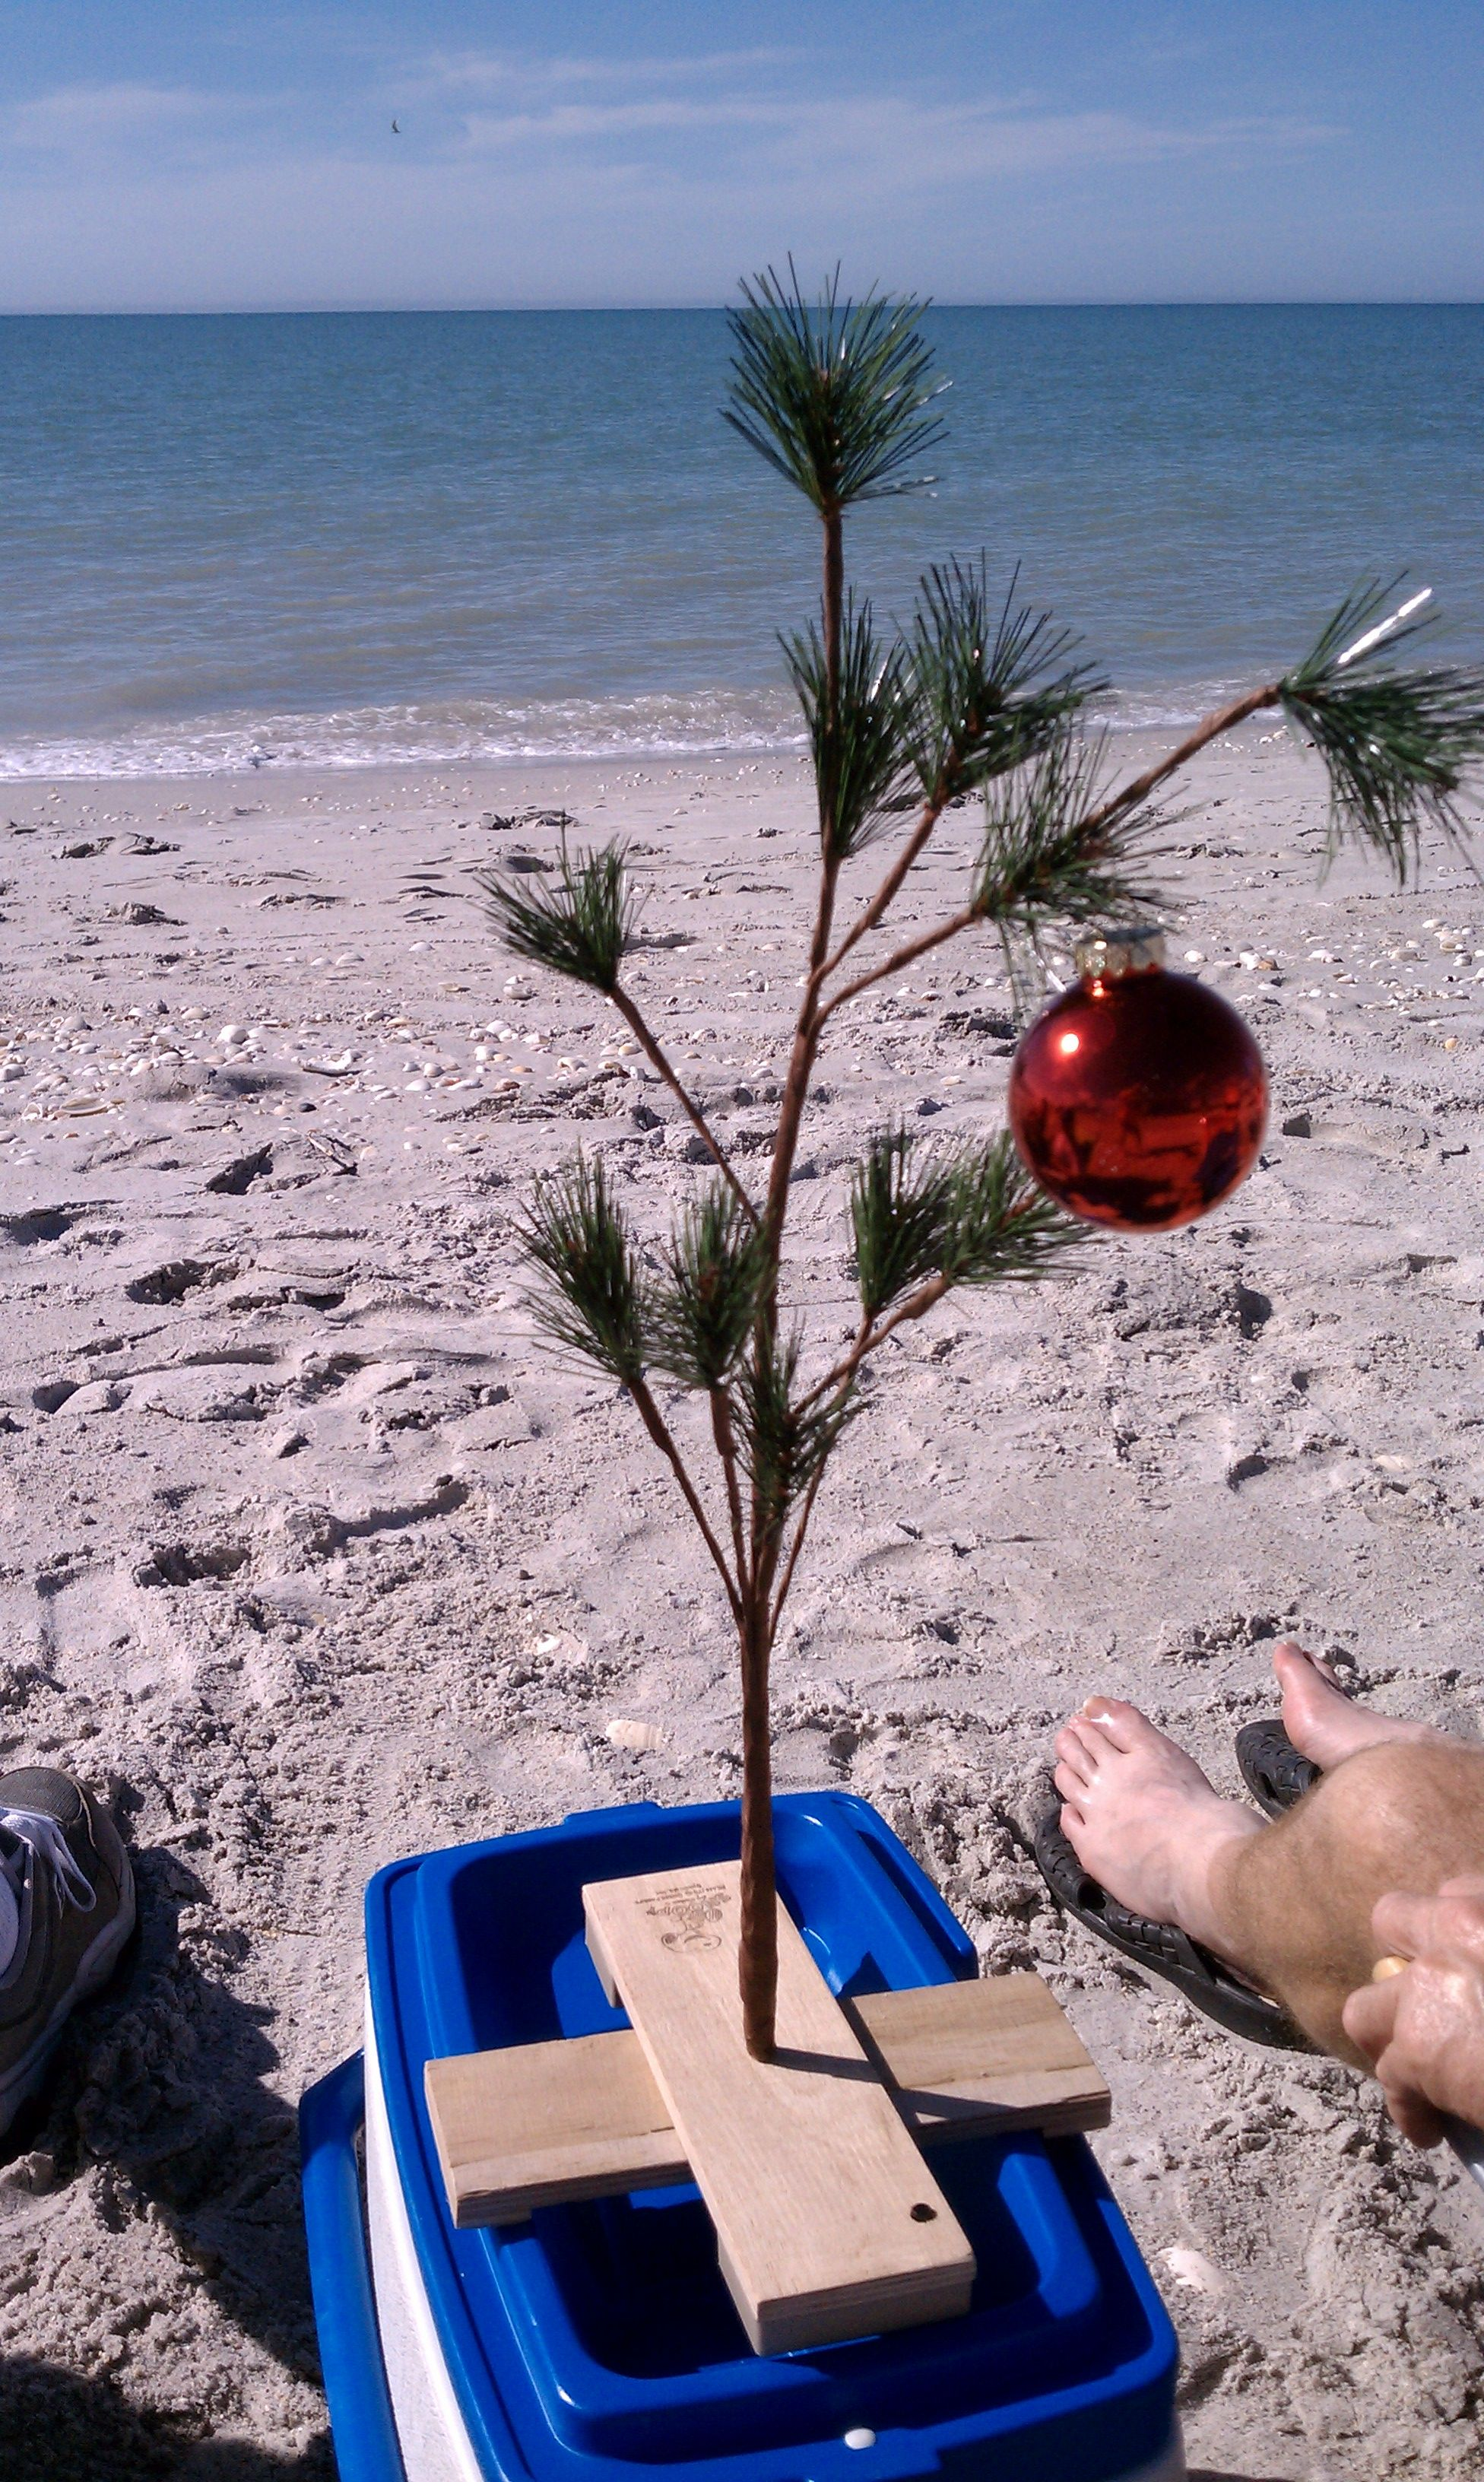 Christmas In Florida Images.Celebrating Christmas In Florida My Style Beach